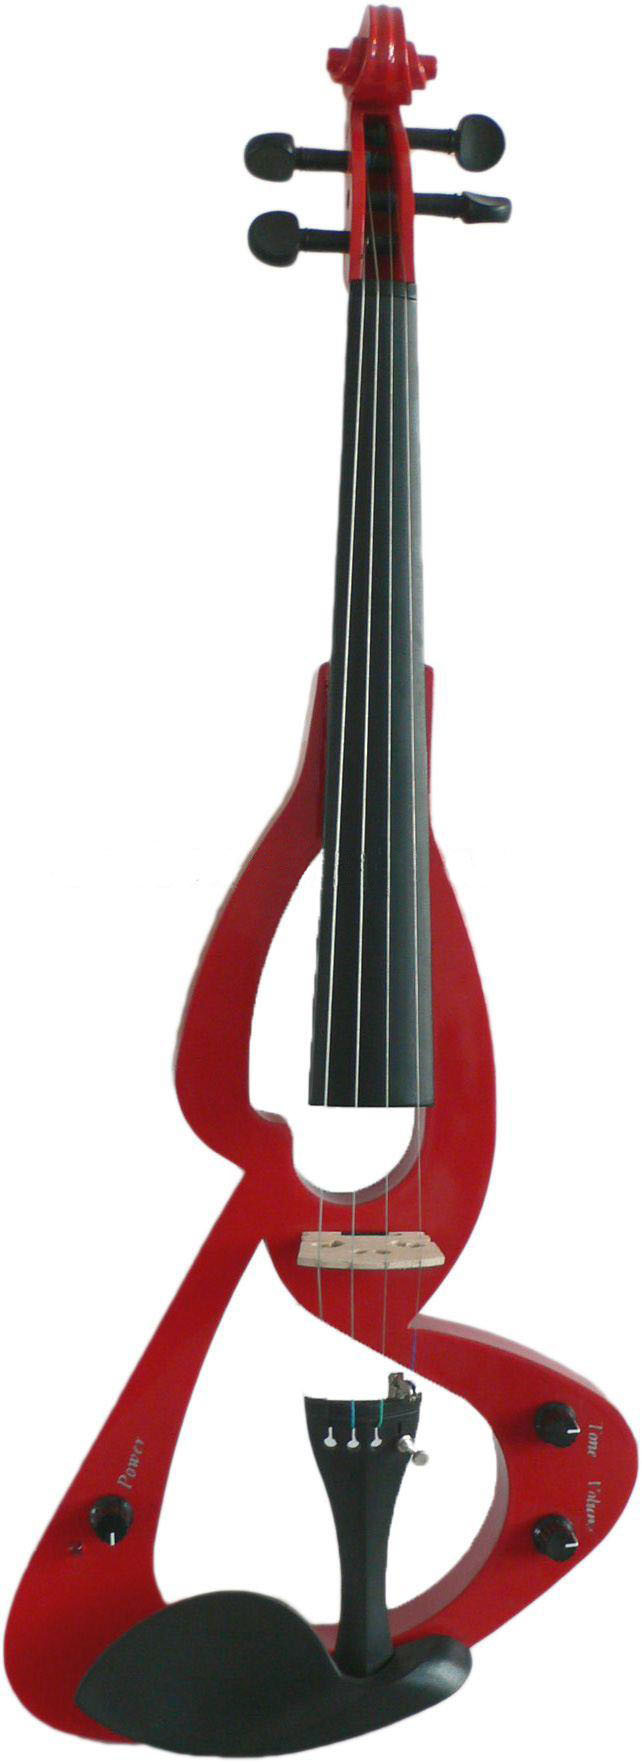 photograph of an electric violin